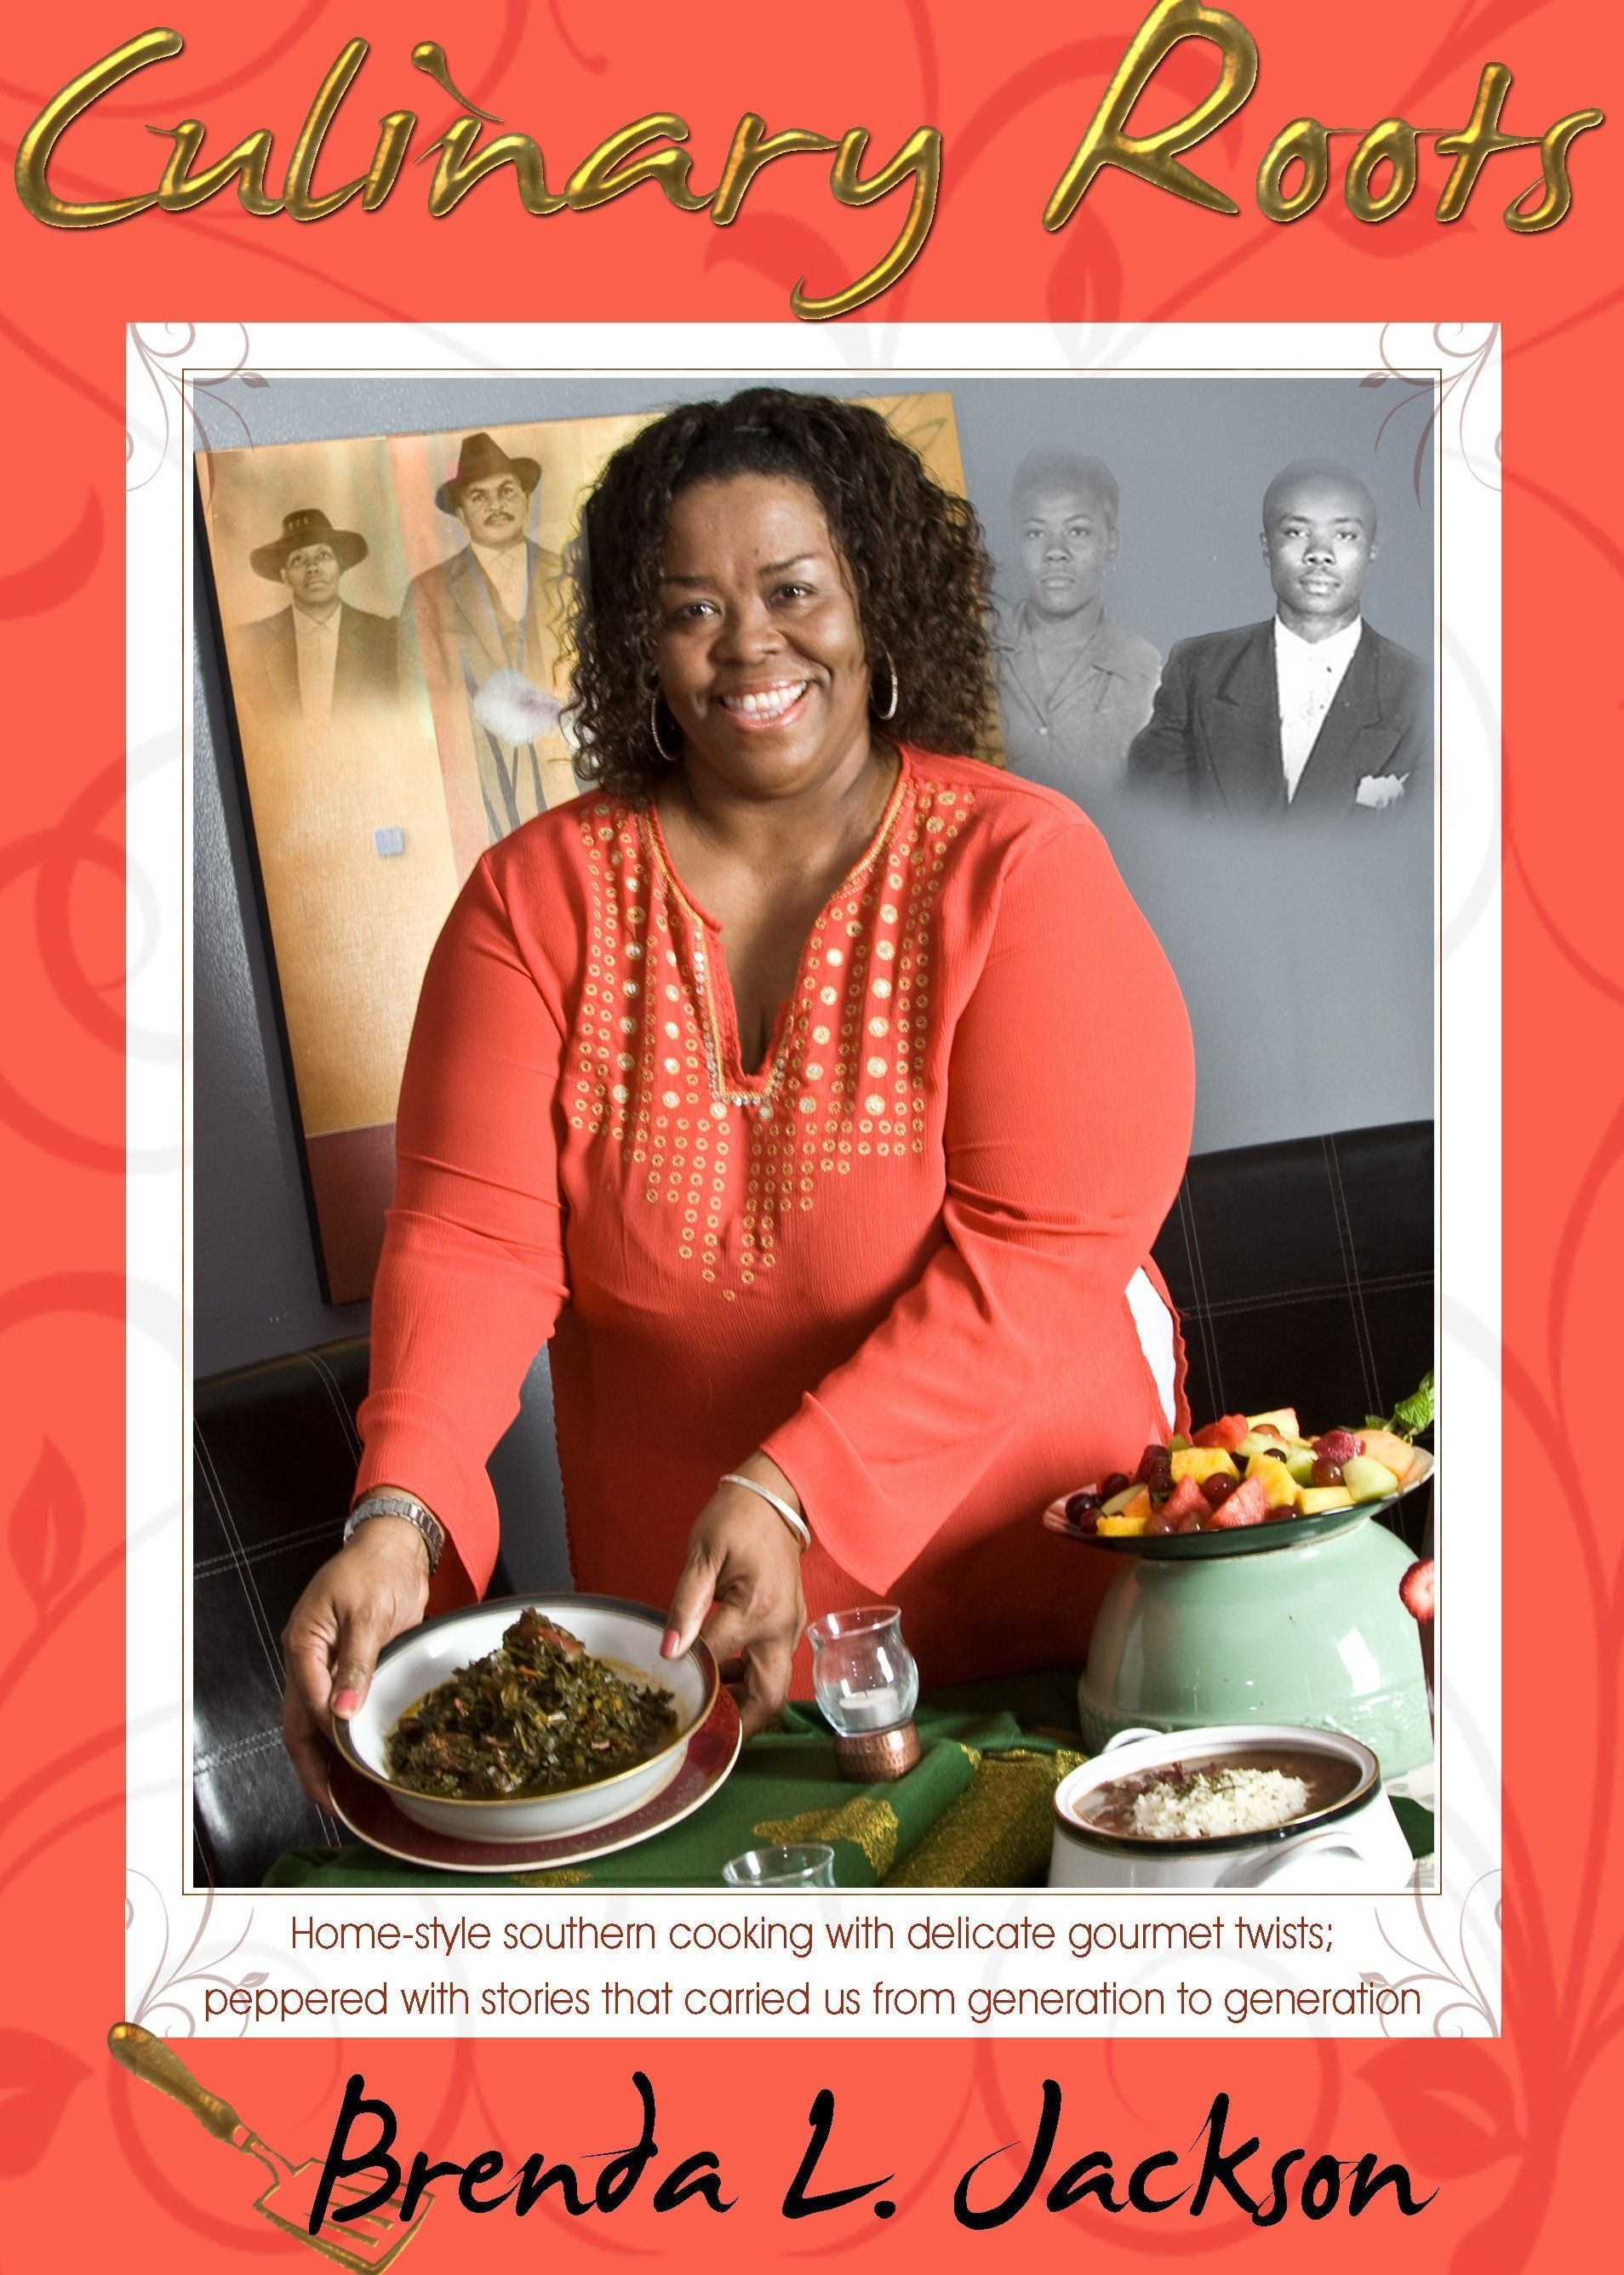 Delightfully delicious twists on southern dishes soul